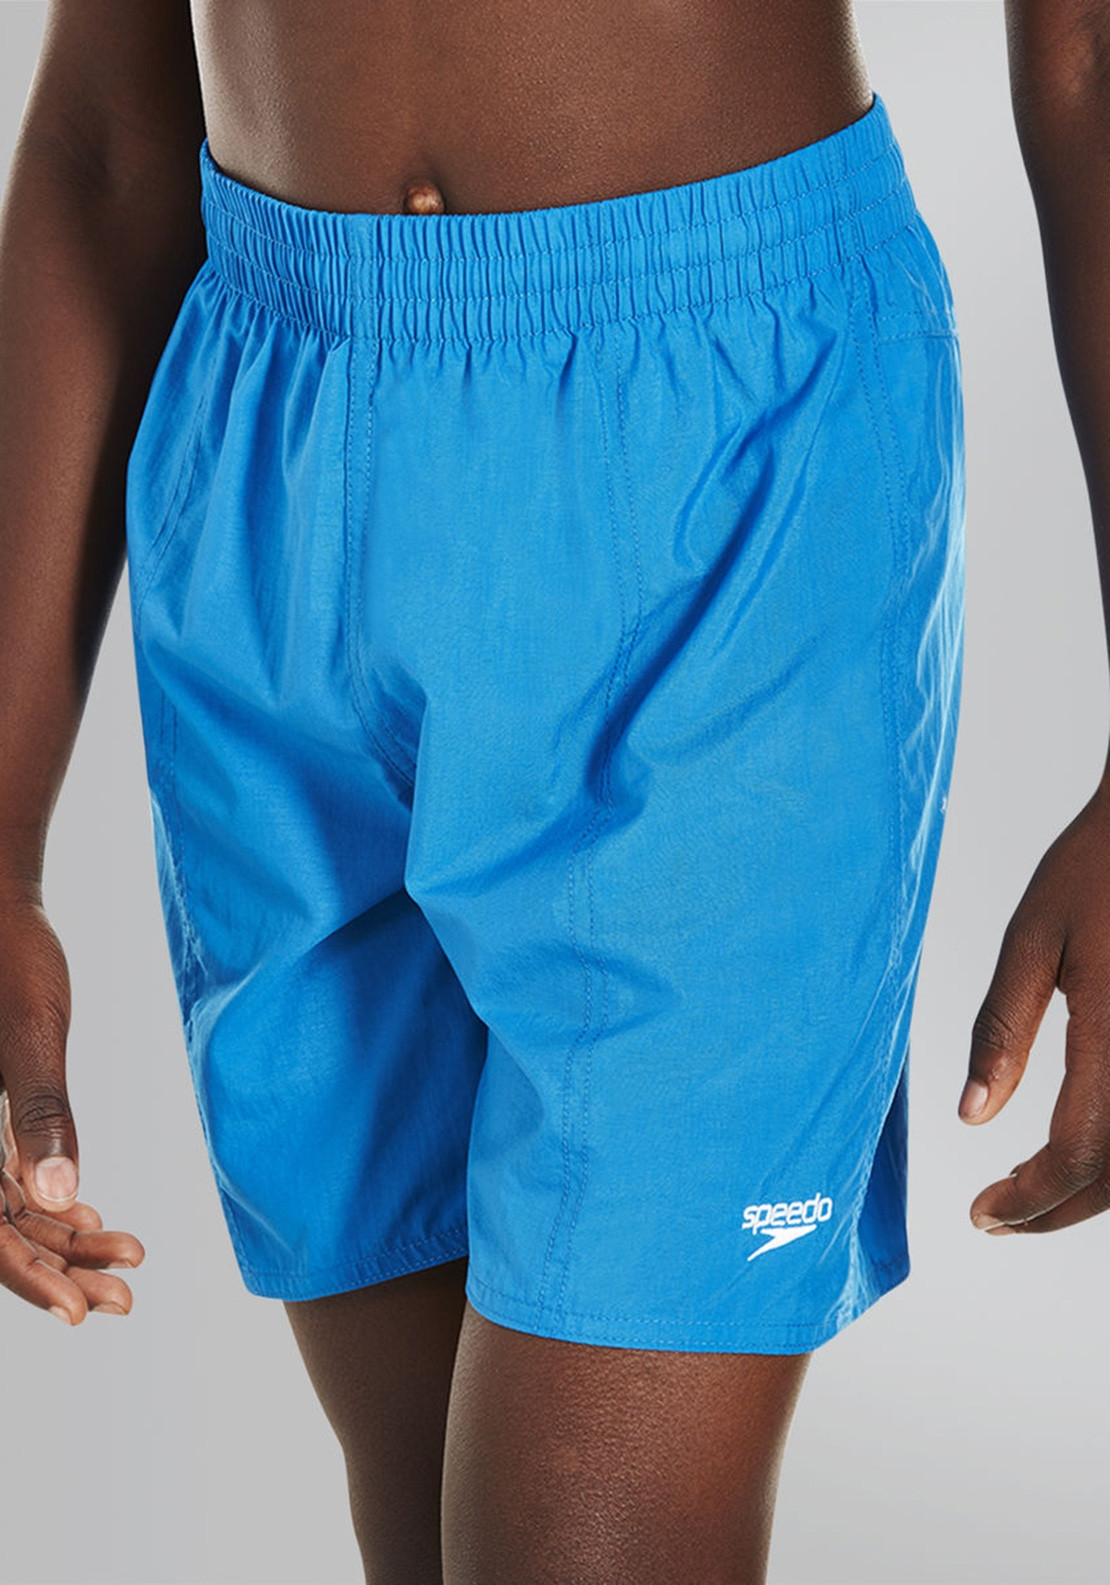 83398ffc09 Speedo Boys Solid Leisure Swim Shorts, Blue | McElhinneys